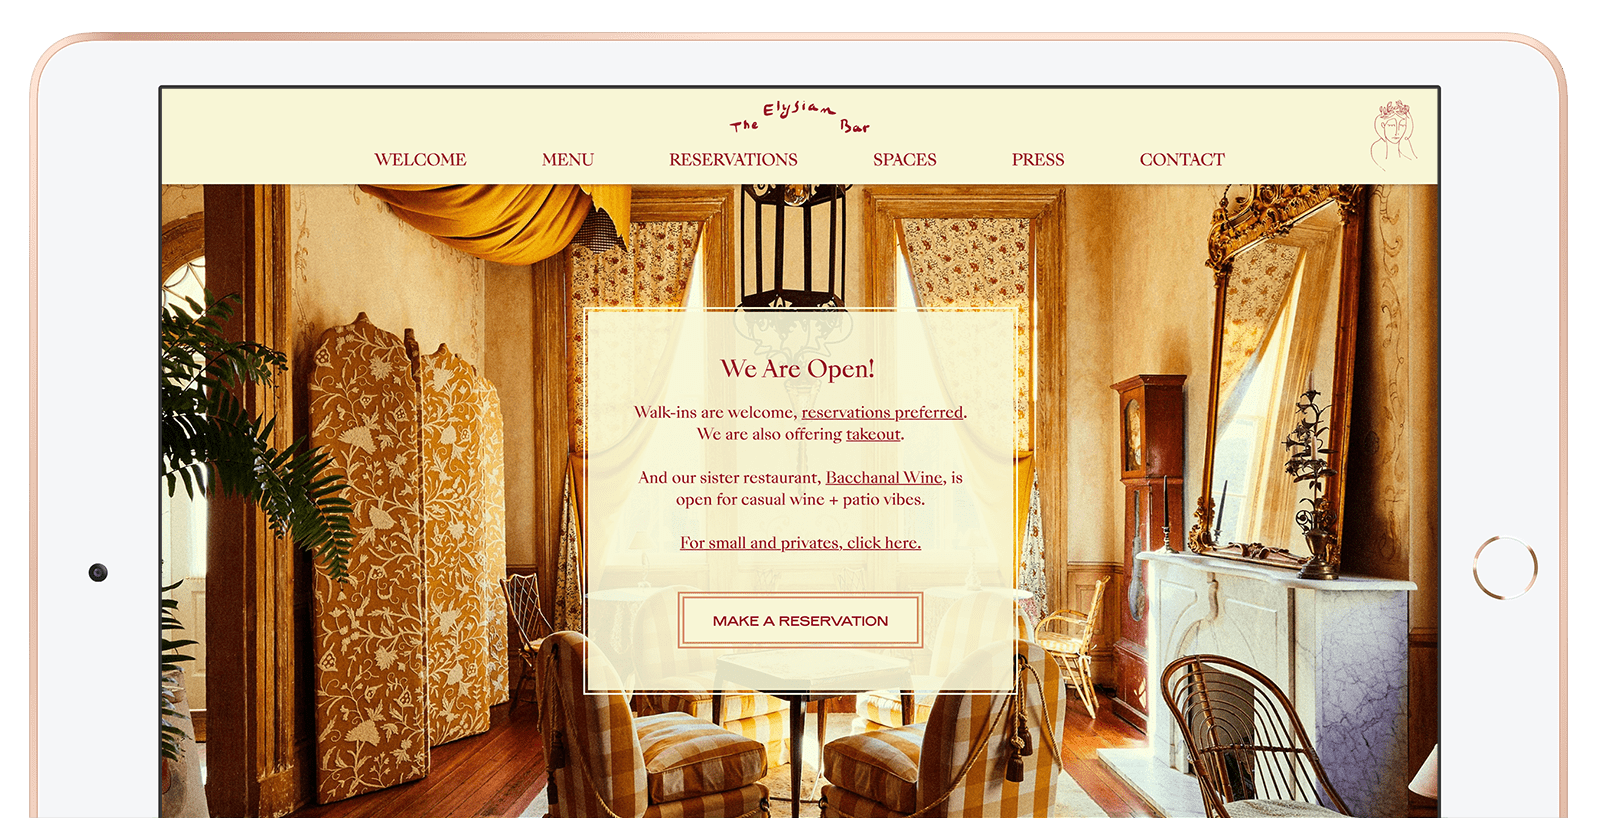 The Elysian Bar's newly designed home page